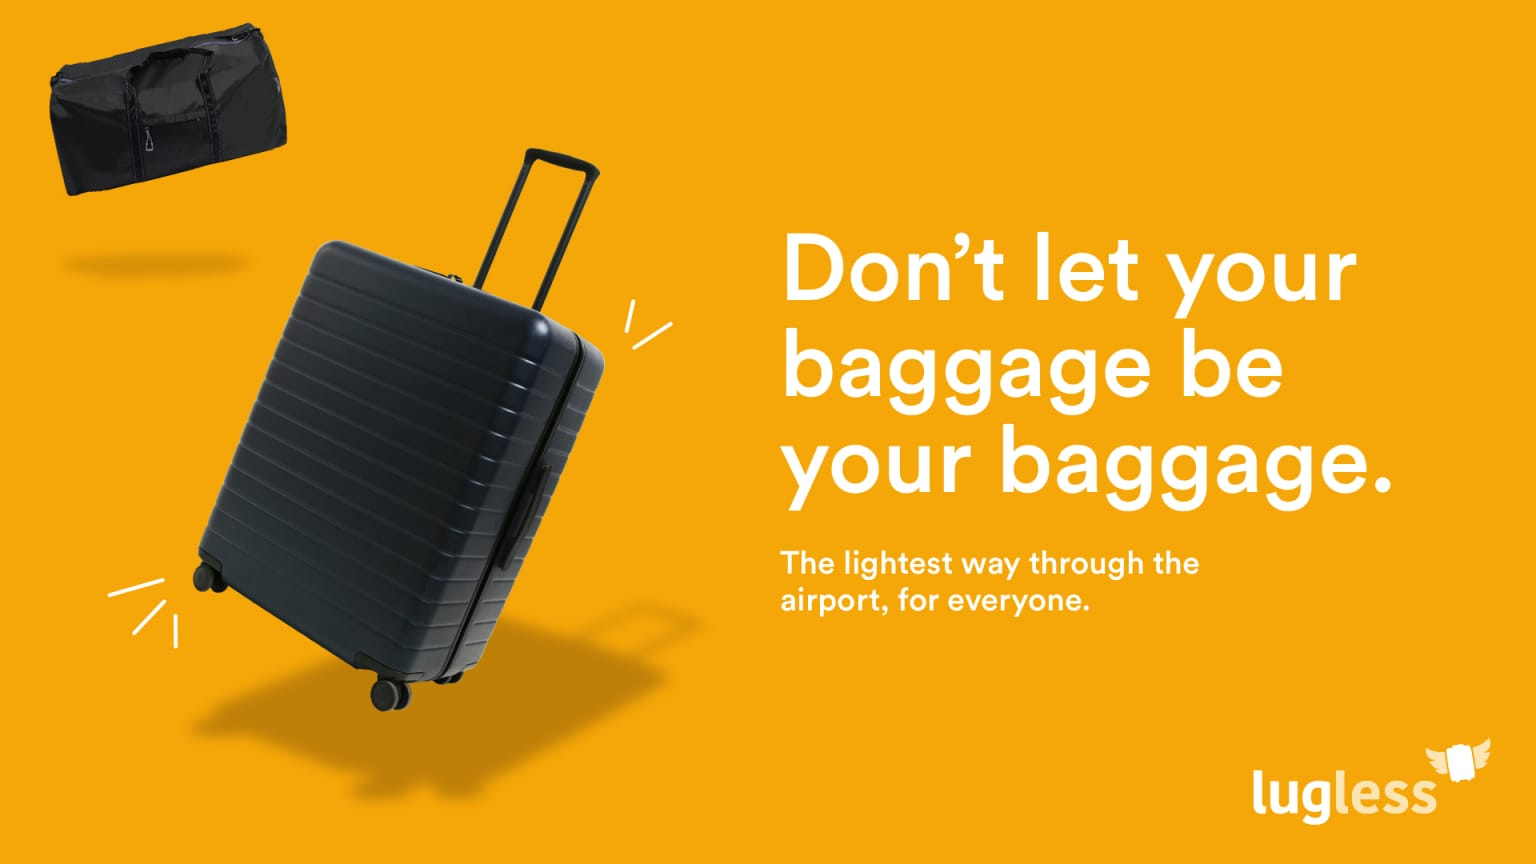 Don't let your baggage be your baggage.